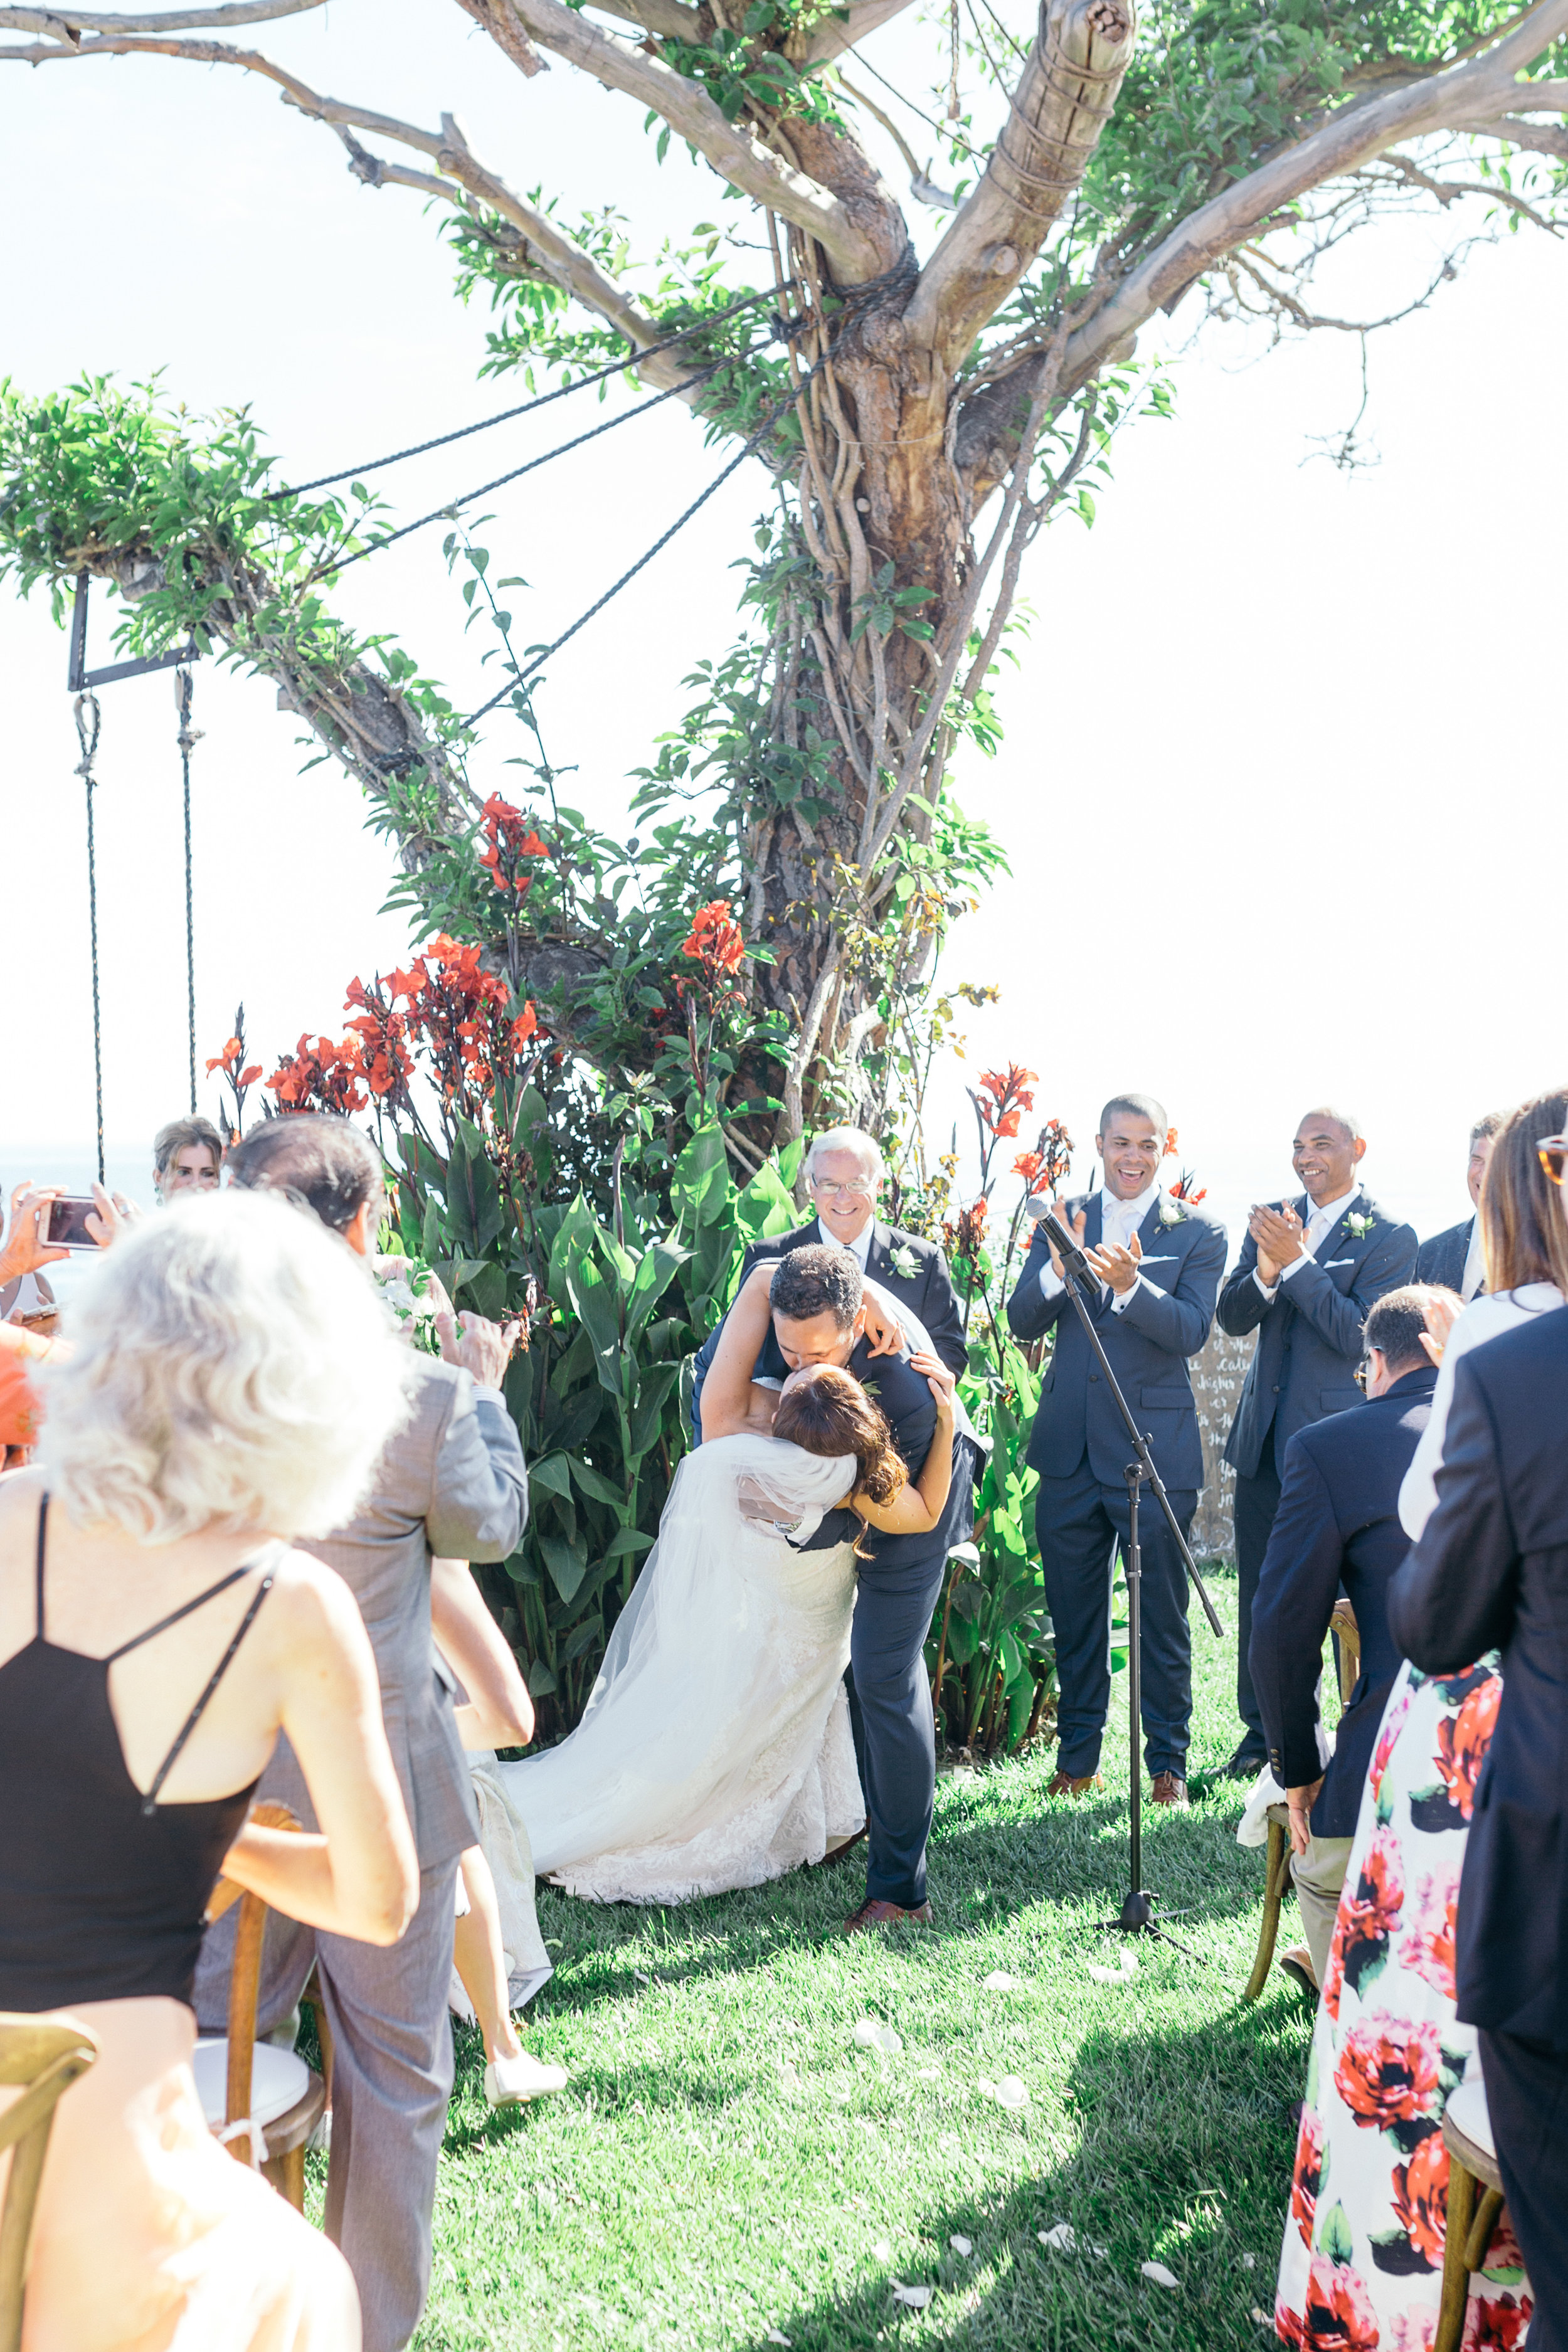 santabarbarwedding.com | Photo: Kiel Rucker | Oceanside Estate Wedding in Santa Barbara